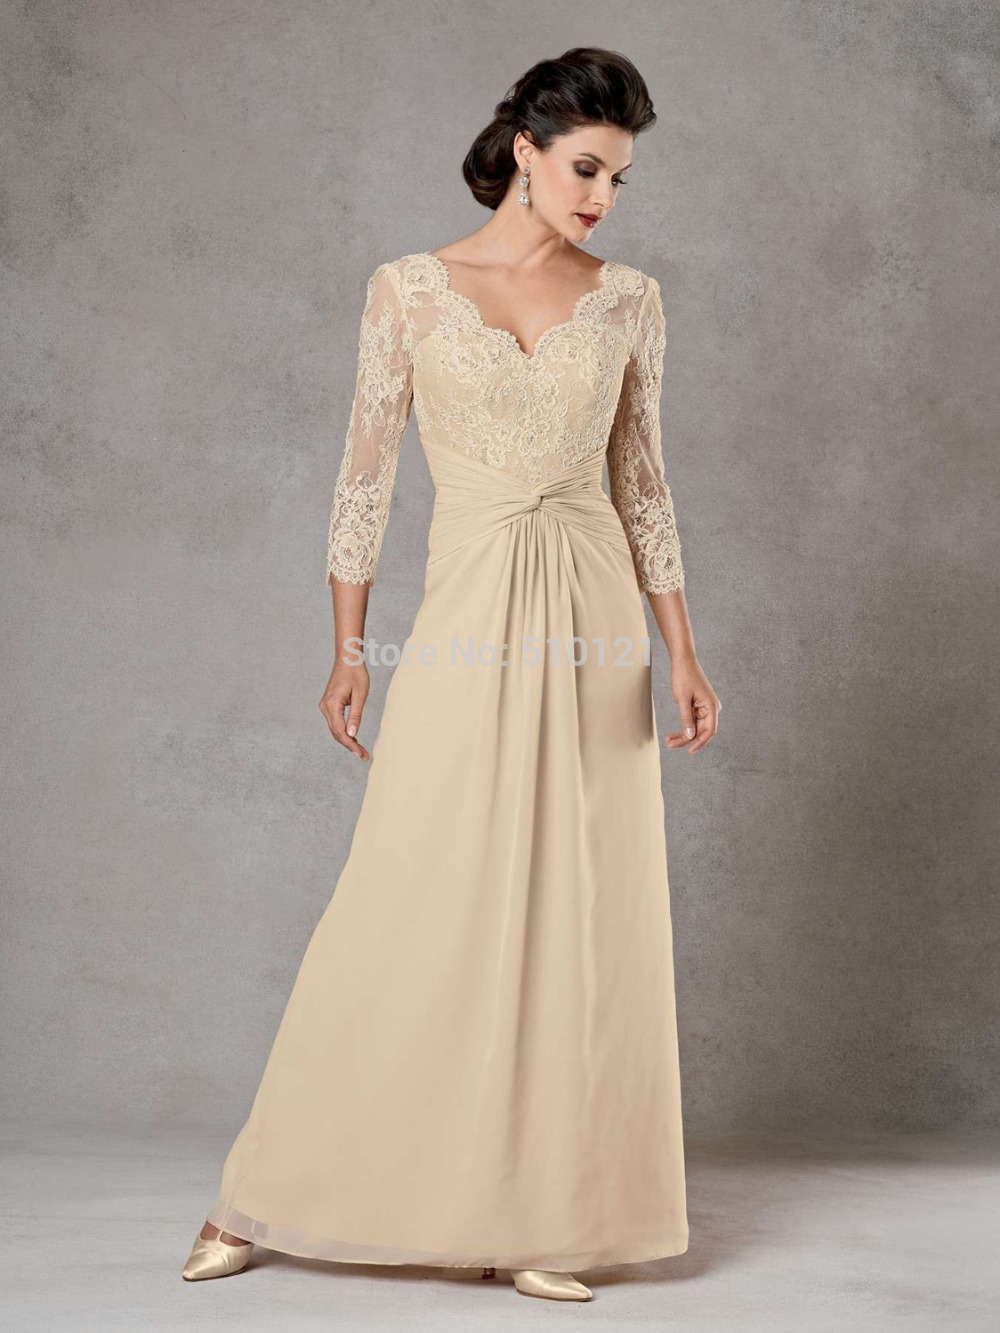 Where To Buy Mother Of The Bride Dresses On Long Island - Amore ...